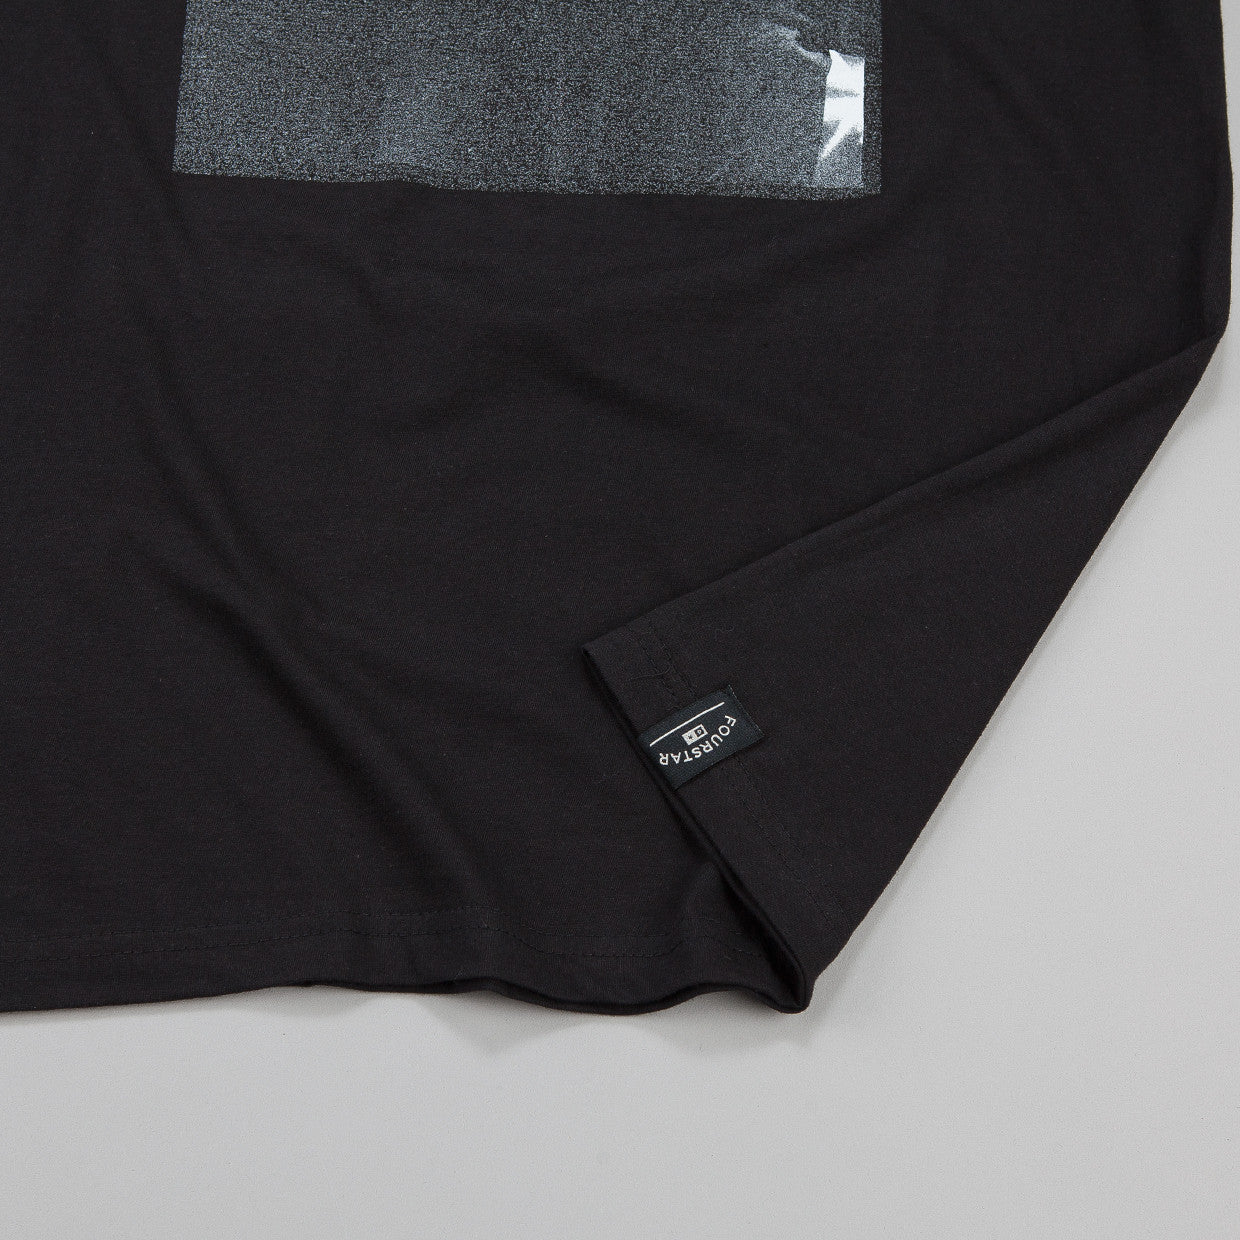 Fourstar Legend #03 T-shirt Black